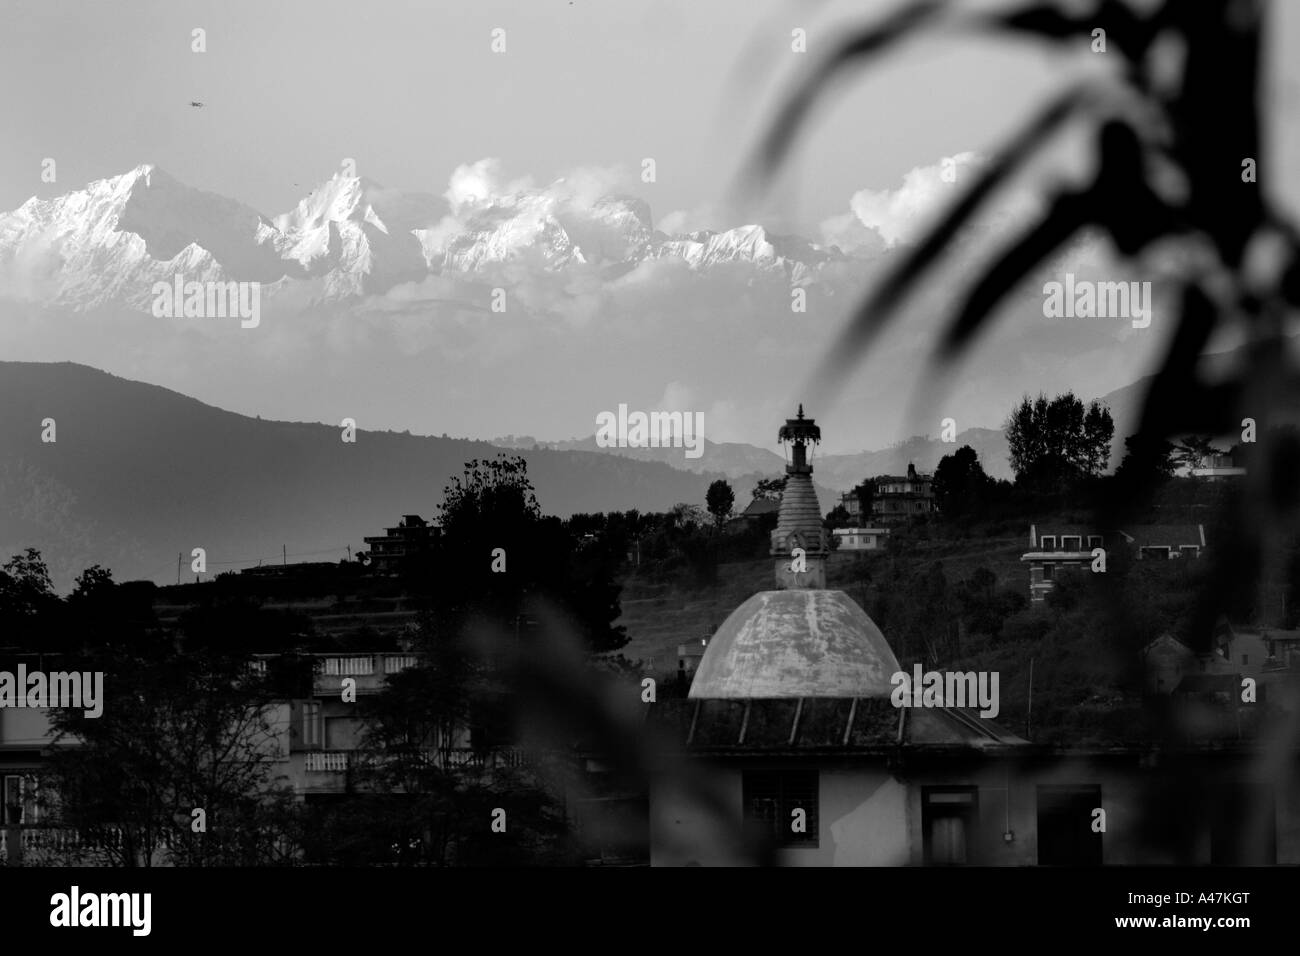 A view of the mighty Himalayan mountain range from the rural village of Bungamati outside of Kathmandu in Nepal - Stock Image